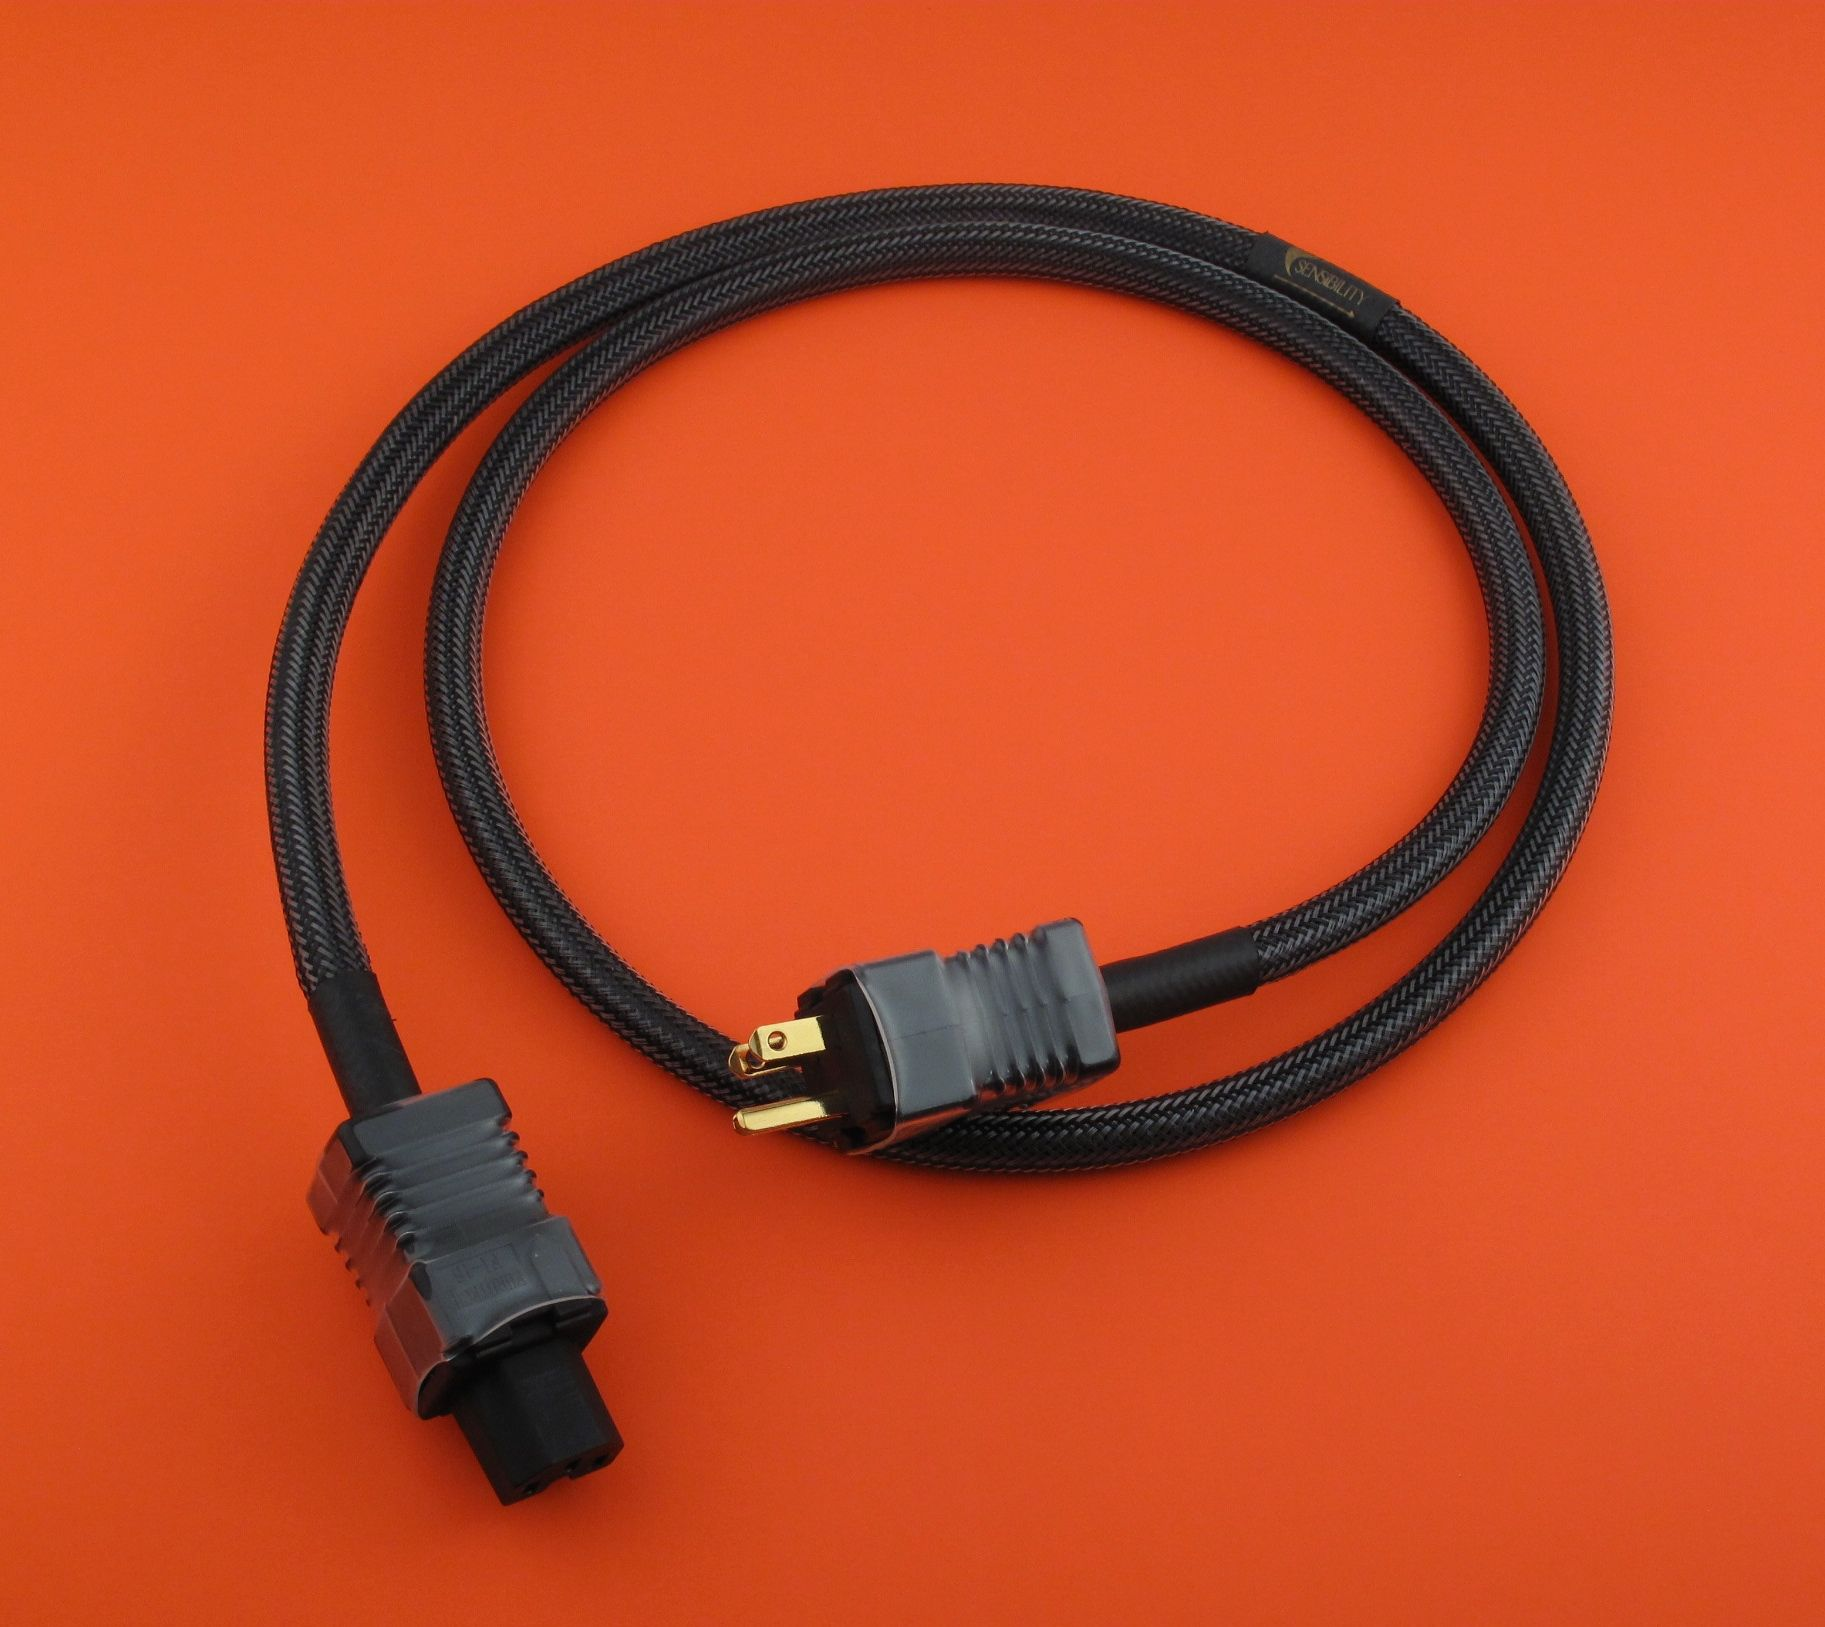 Audio Sensibility Cables: Musings on Price and Prejudice - Positive